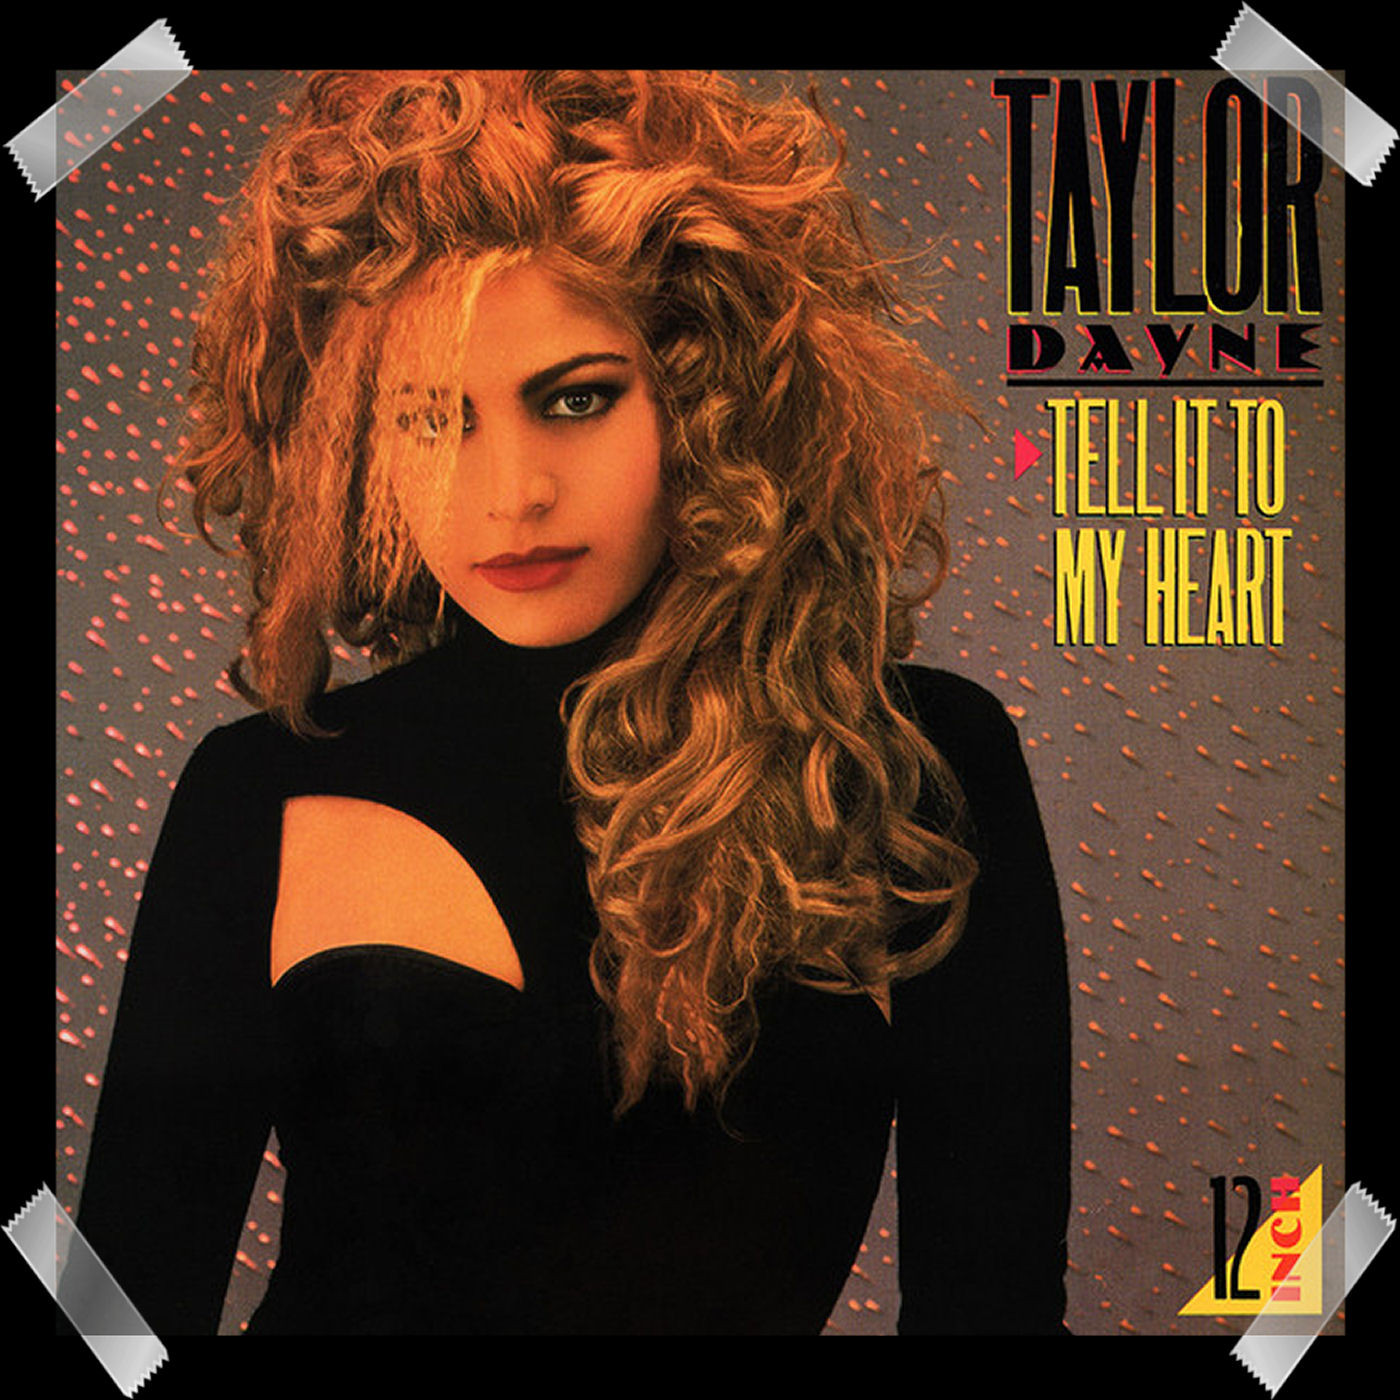 22. Taylor Dayne - Tell It To My Heart